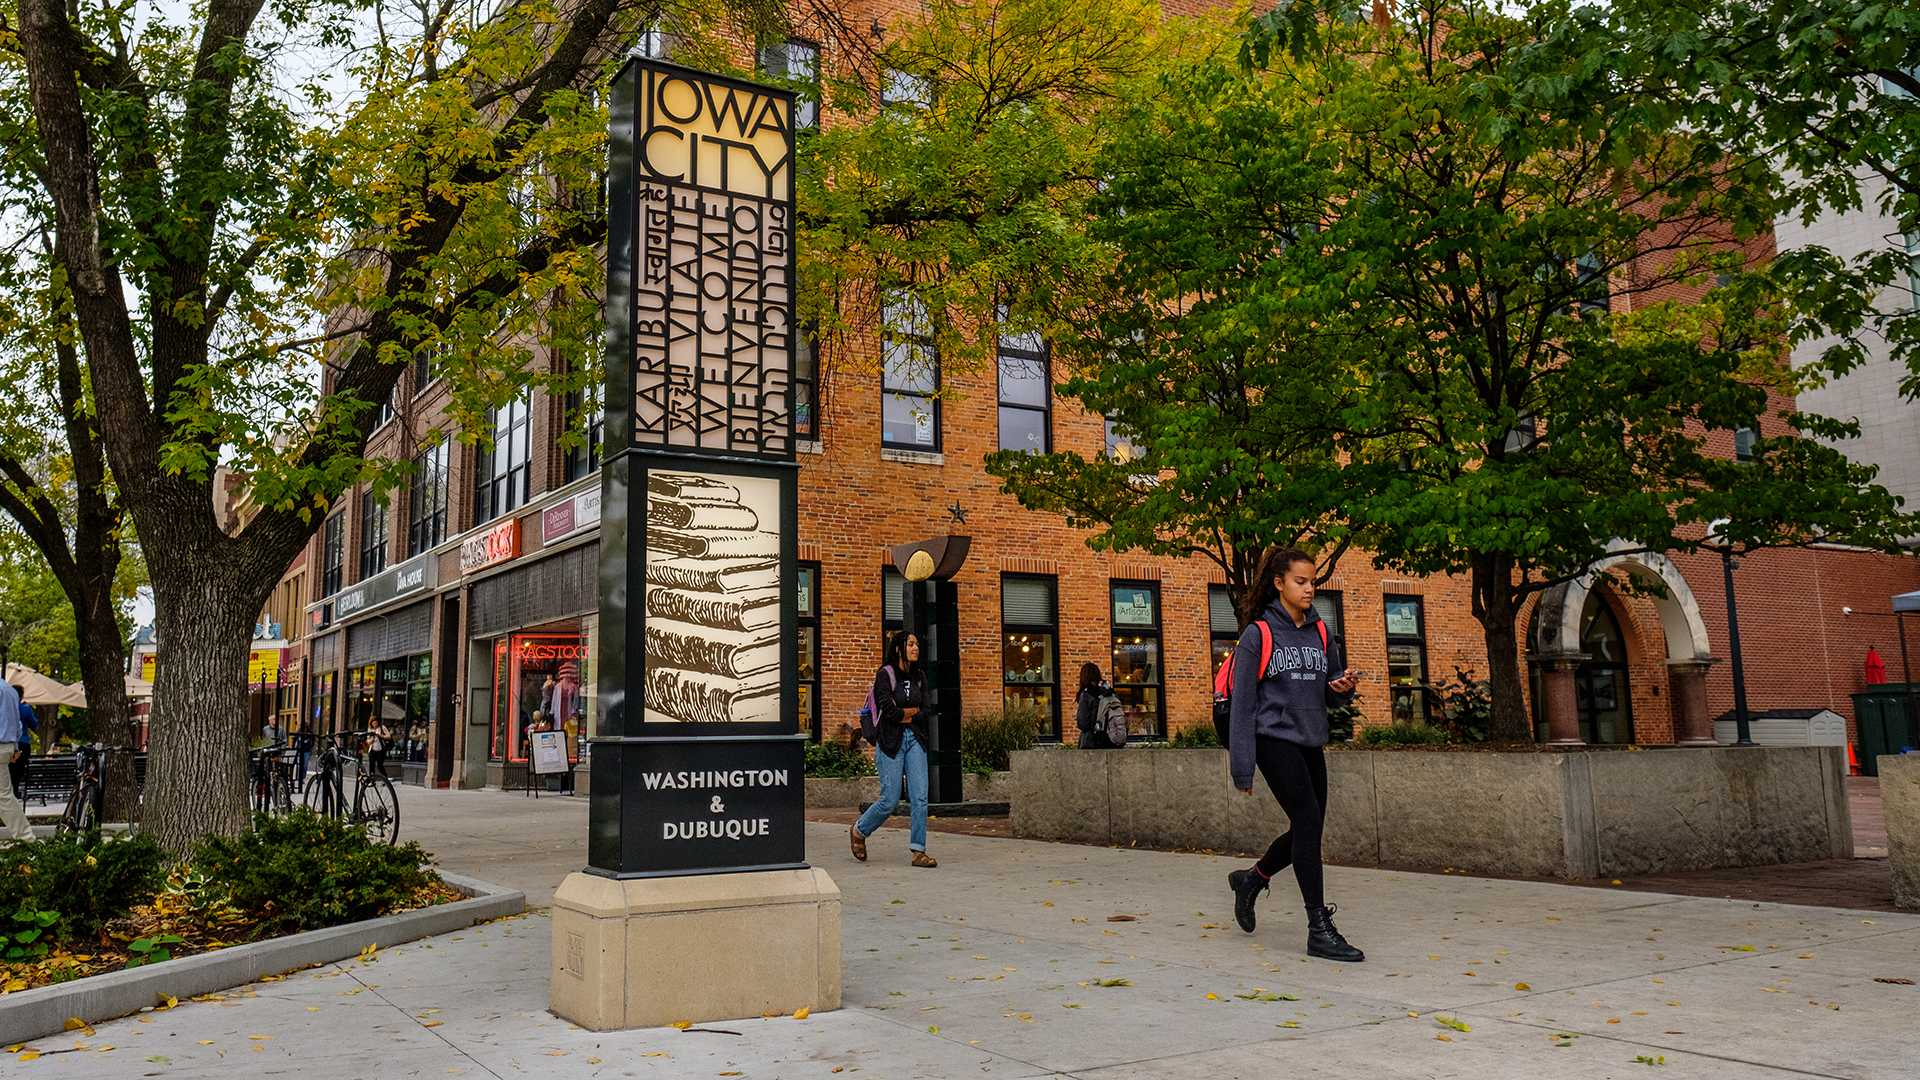 A literature themed sign welcoming visitors to Iowa City is seen on the corner of Washington and Dubuque Streets on Thursday, Oct. 12, 2017. The White House announced Thursday that the United states would be leaving UNESCO. (Nick Rohlman/The Daily Iowan)